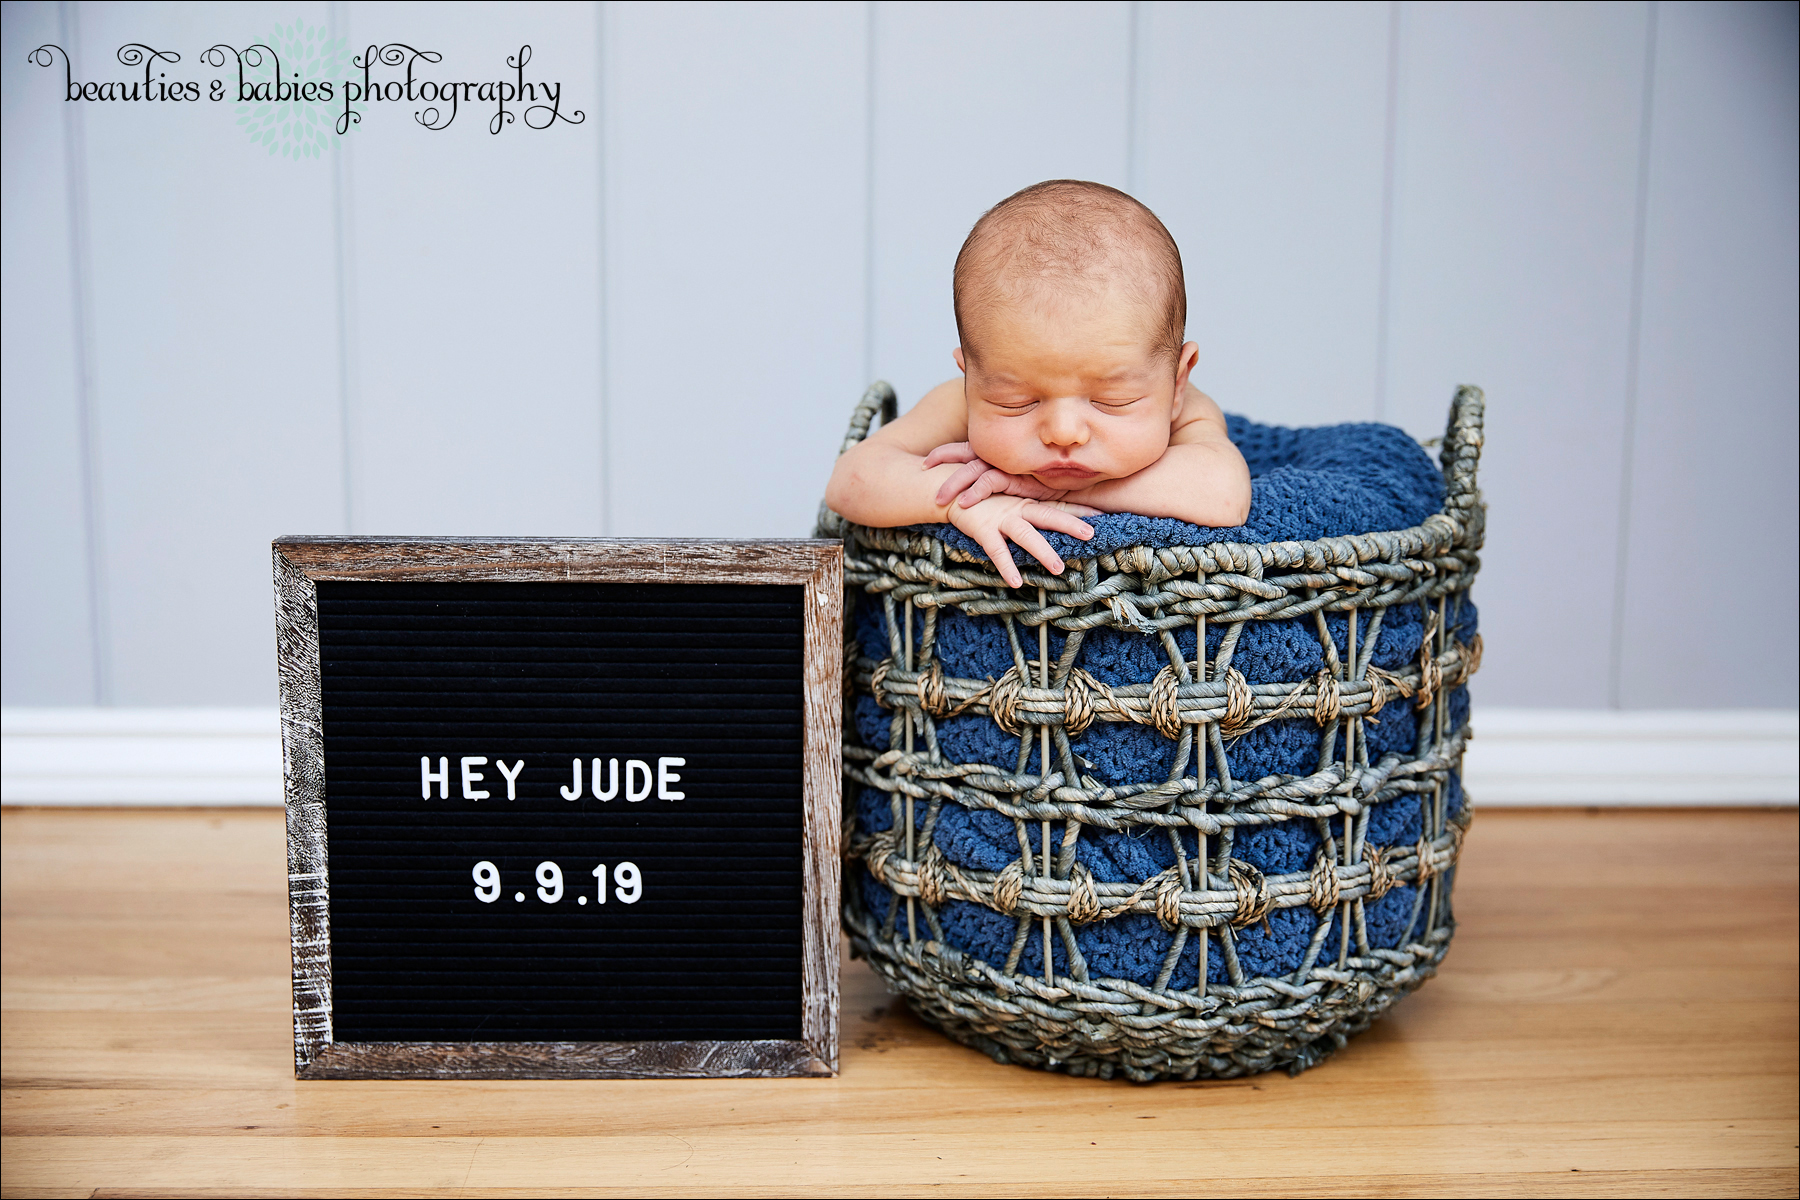 Newborn Baby pictures family photography Los Angeles photographer